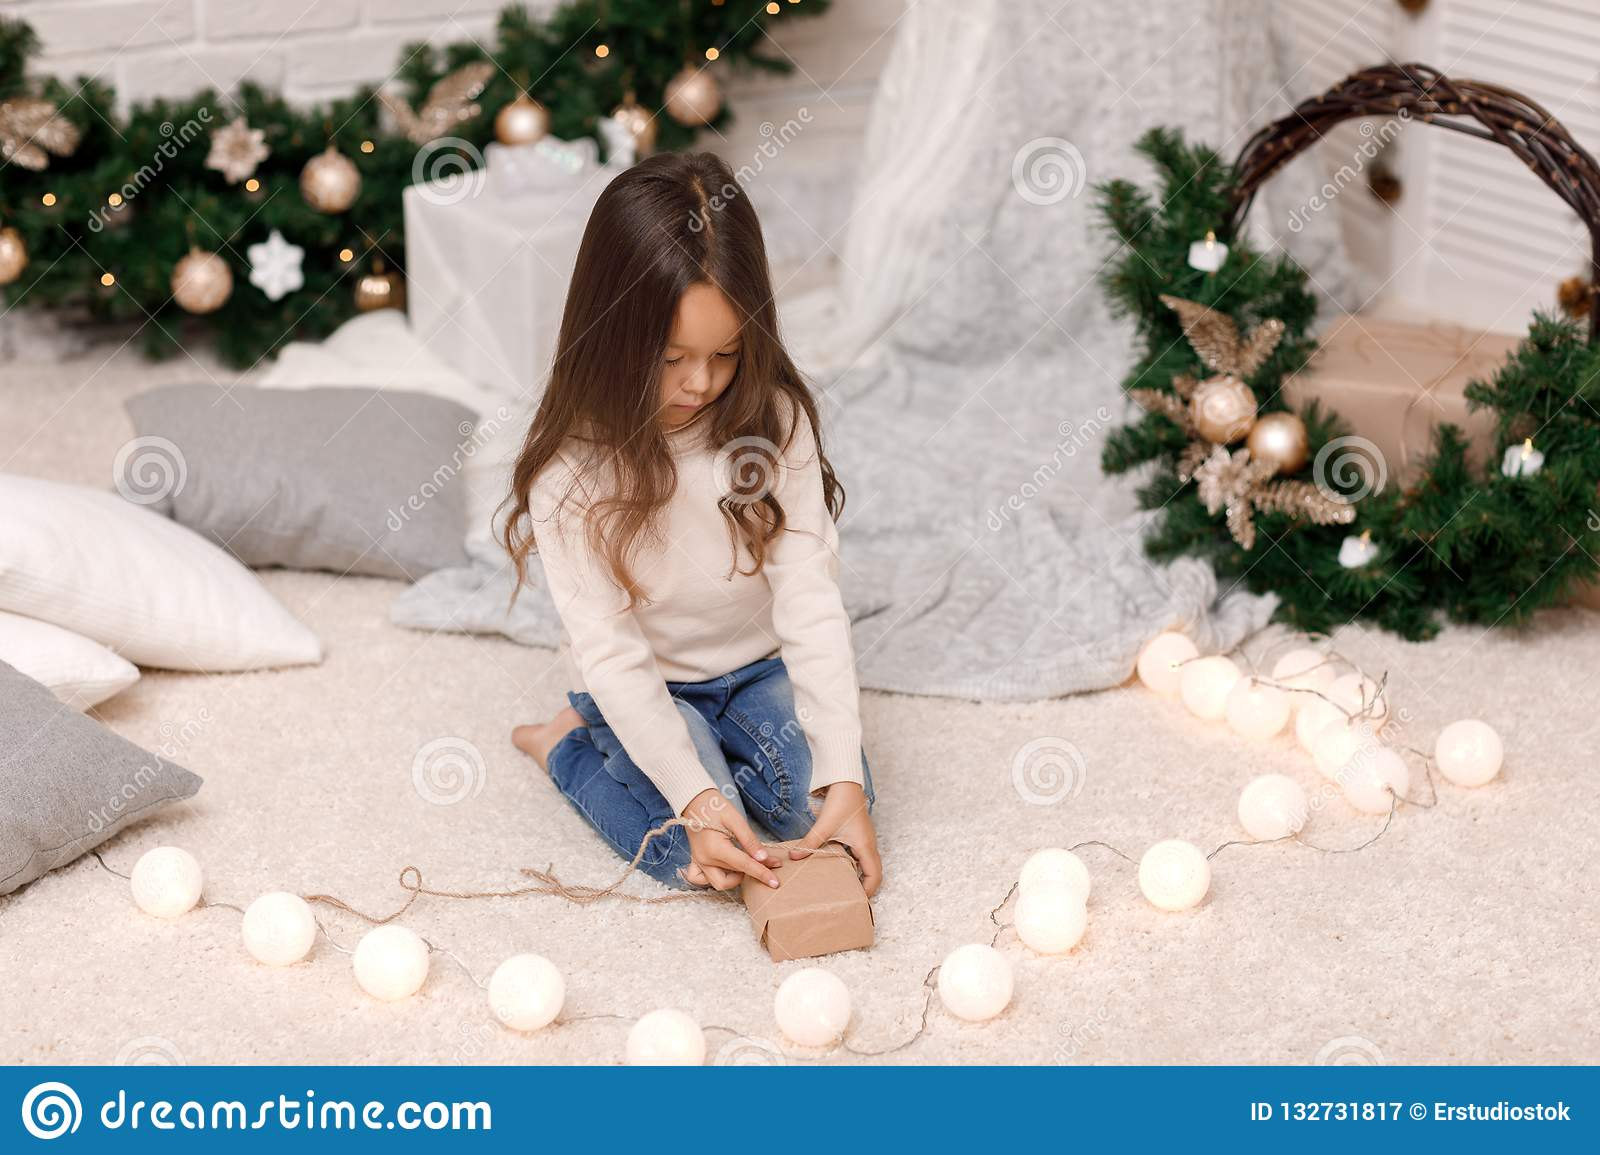 Cute Christmas Gifts For Girlfriend.Cute Child Girl Packing Christmas Gifts At Home Stock Image